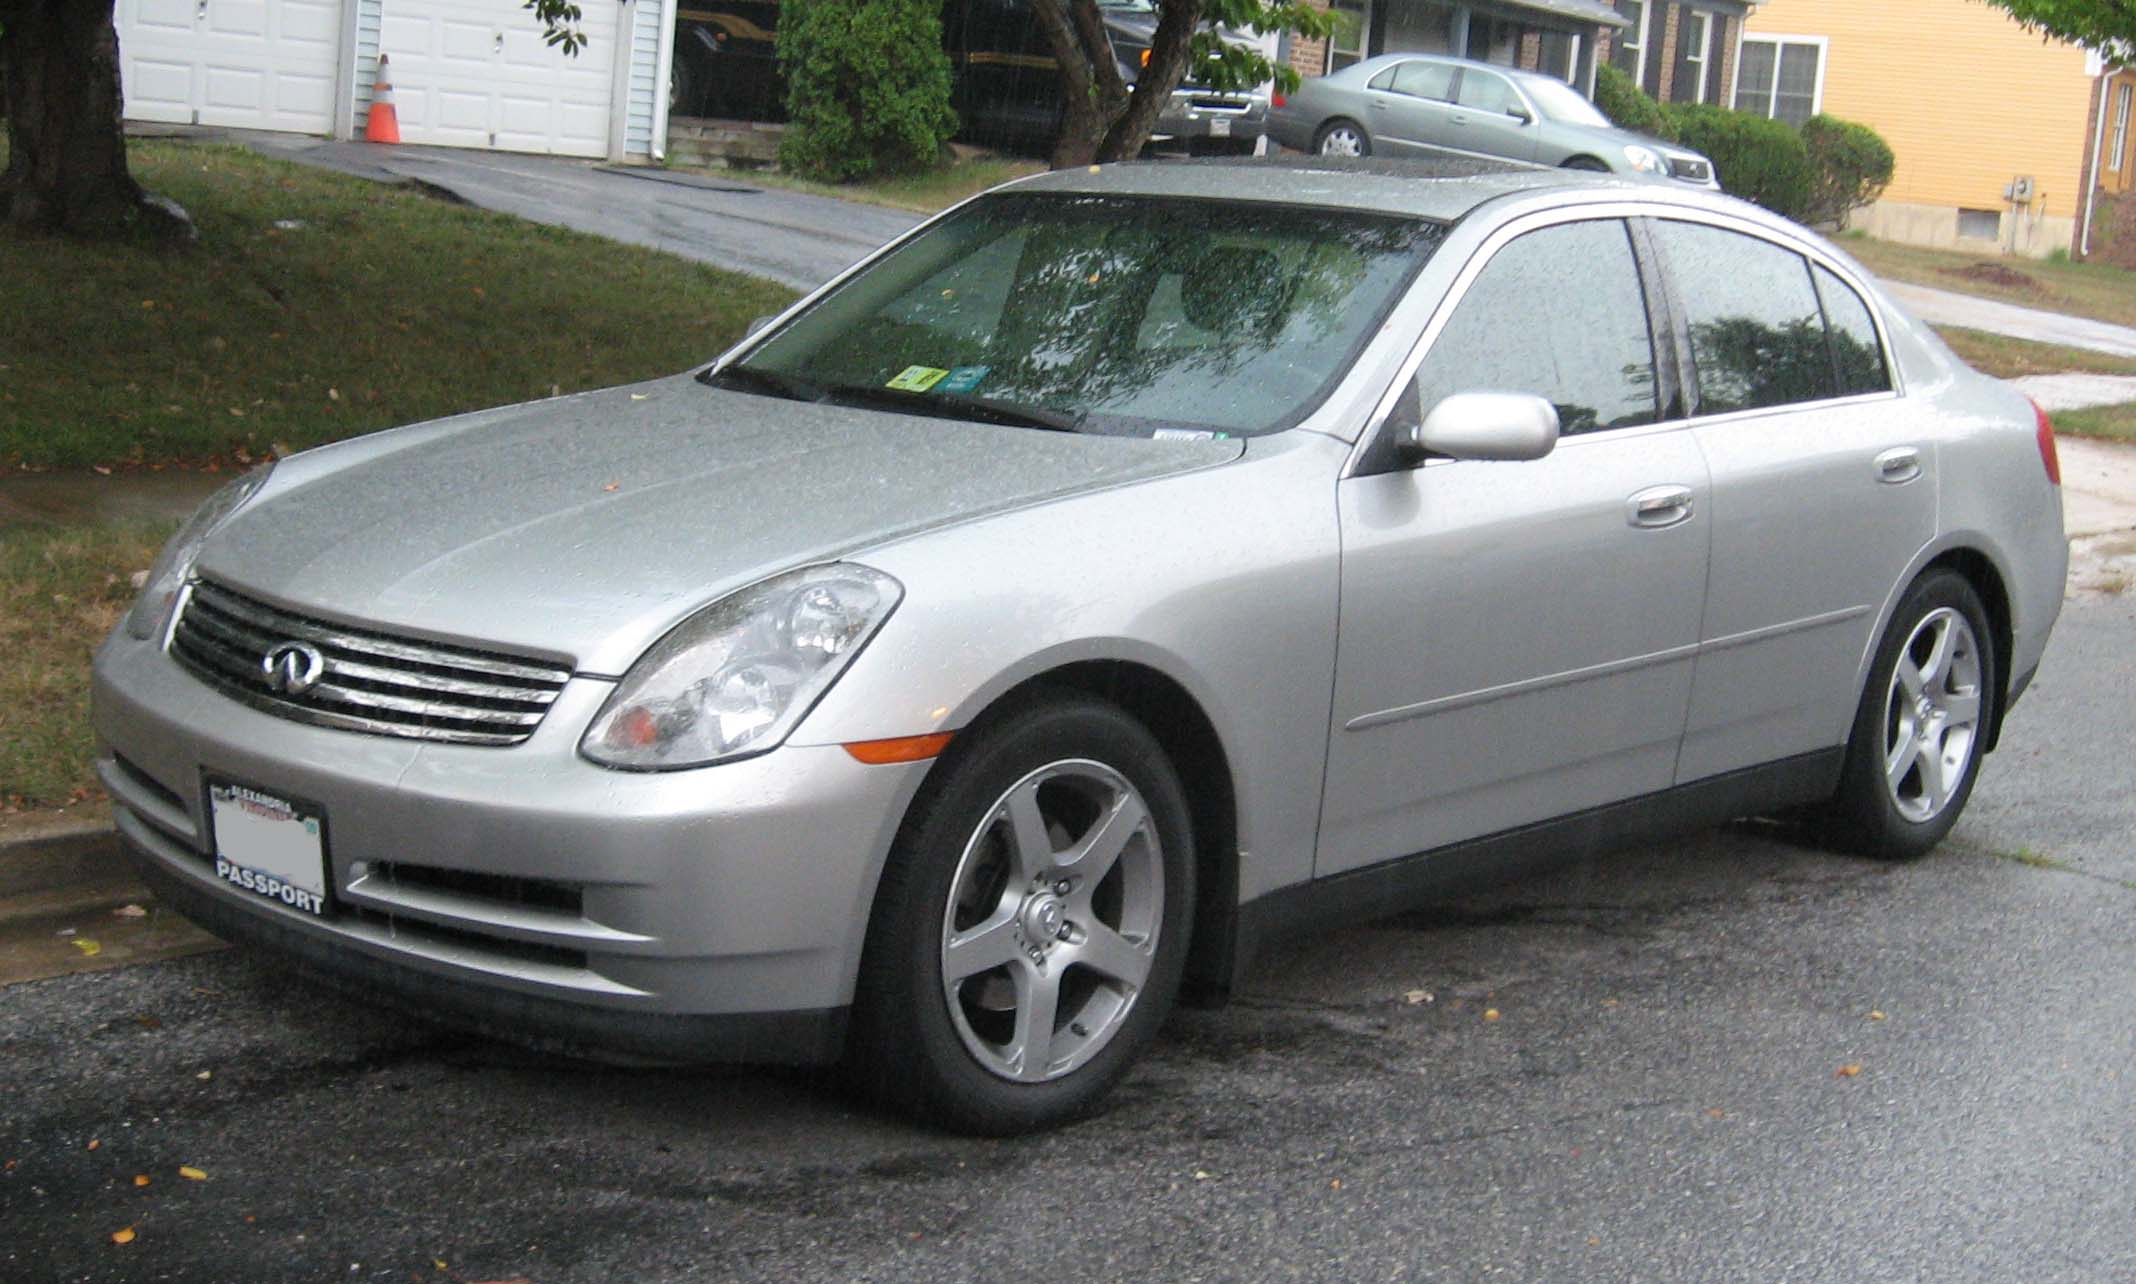 2004 infiniti g35 information and photos momentcar 2004 g35 1 2004 g35 1 vanachro Images